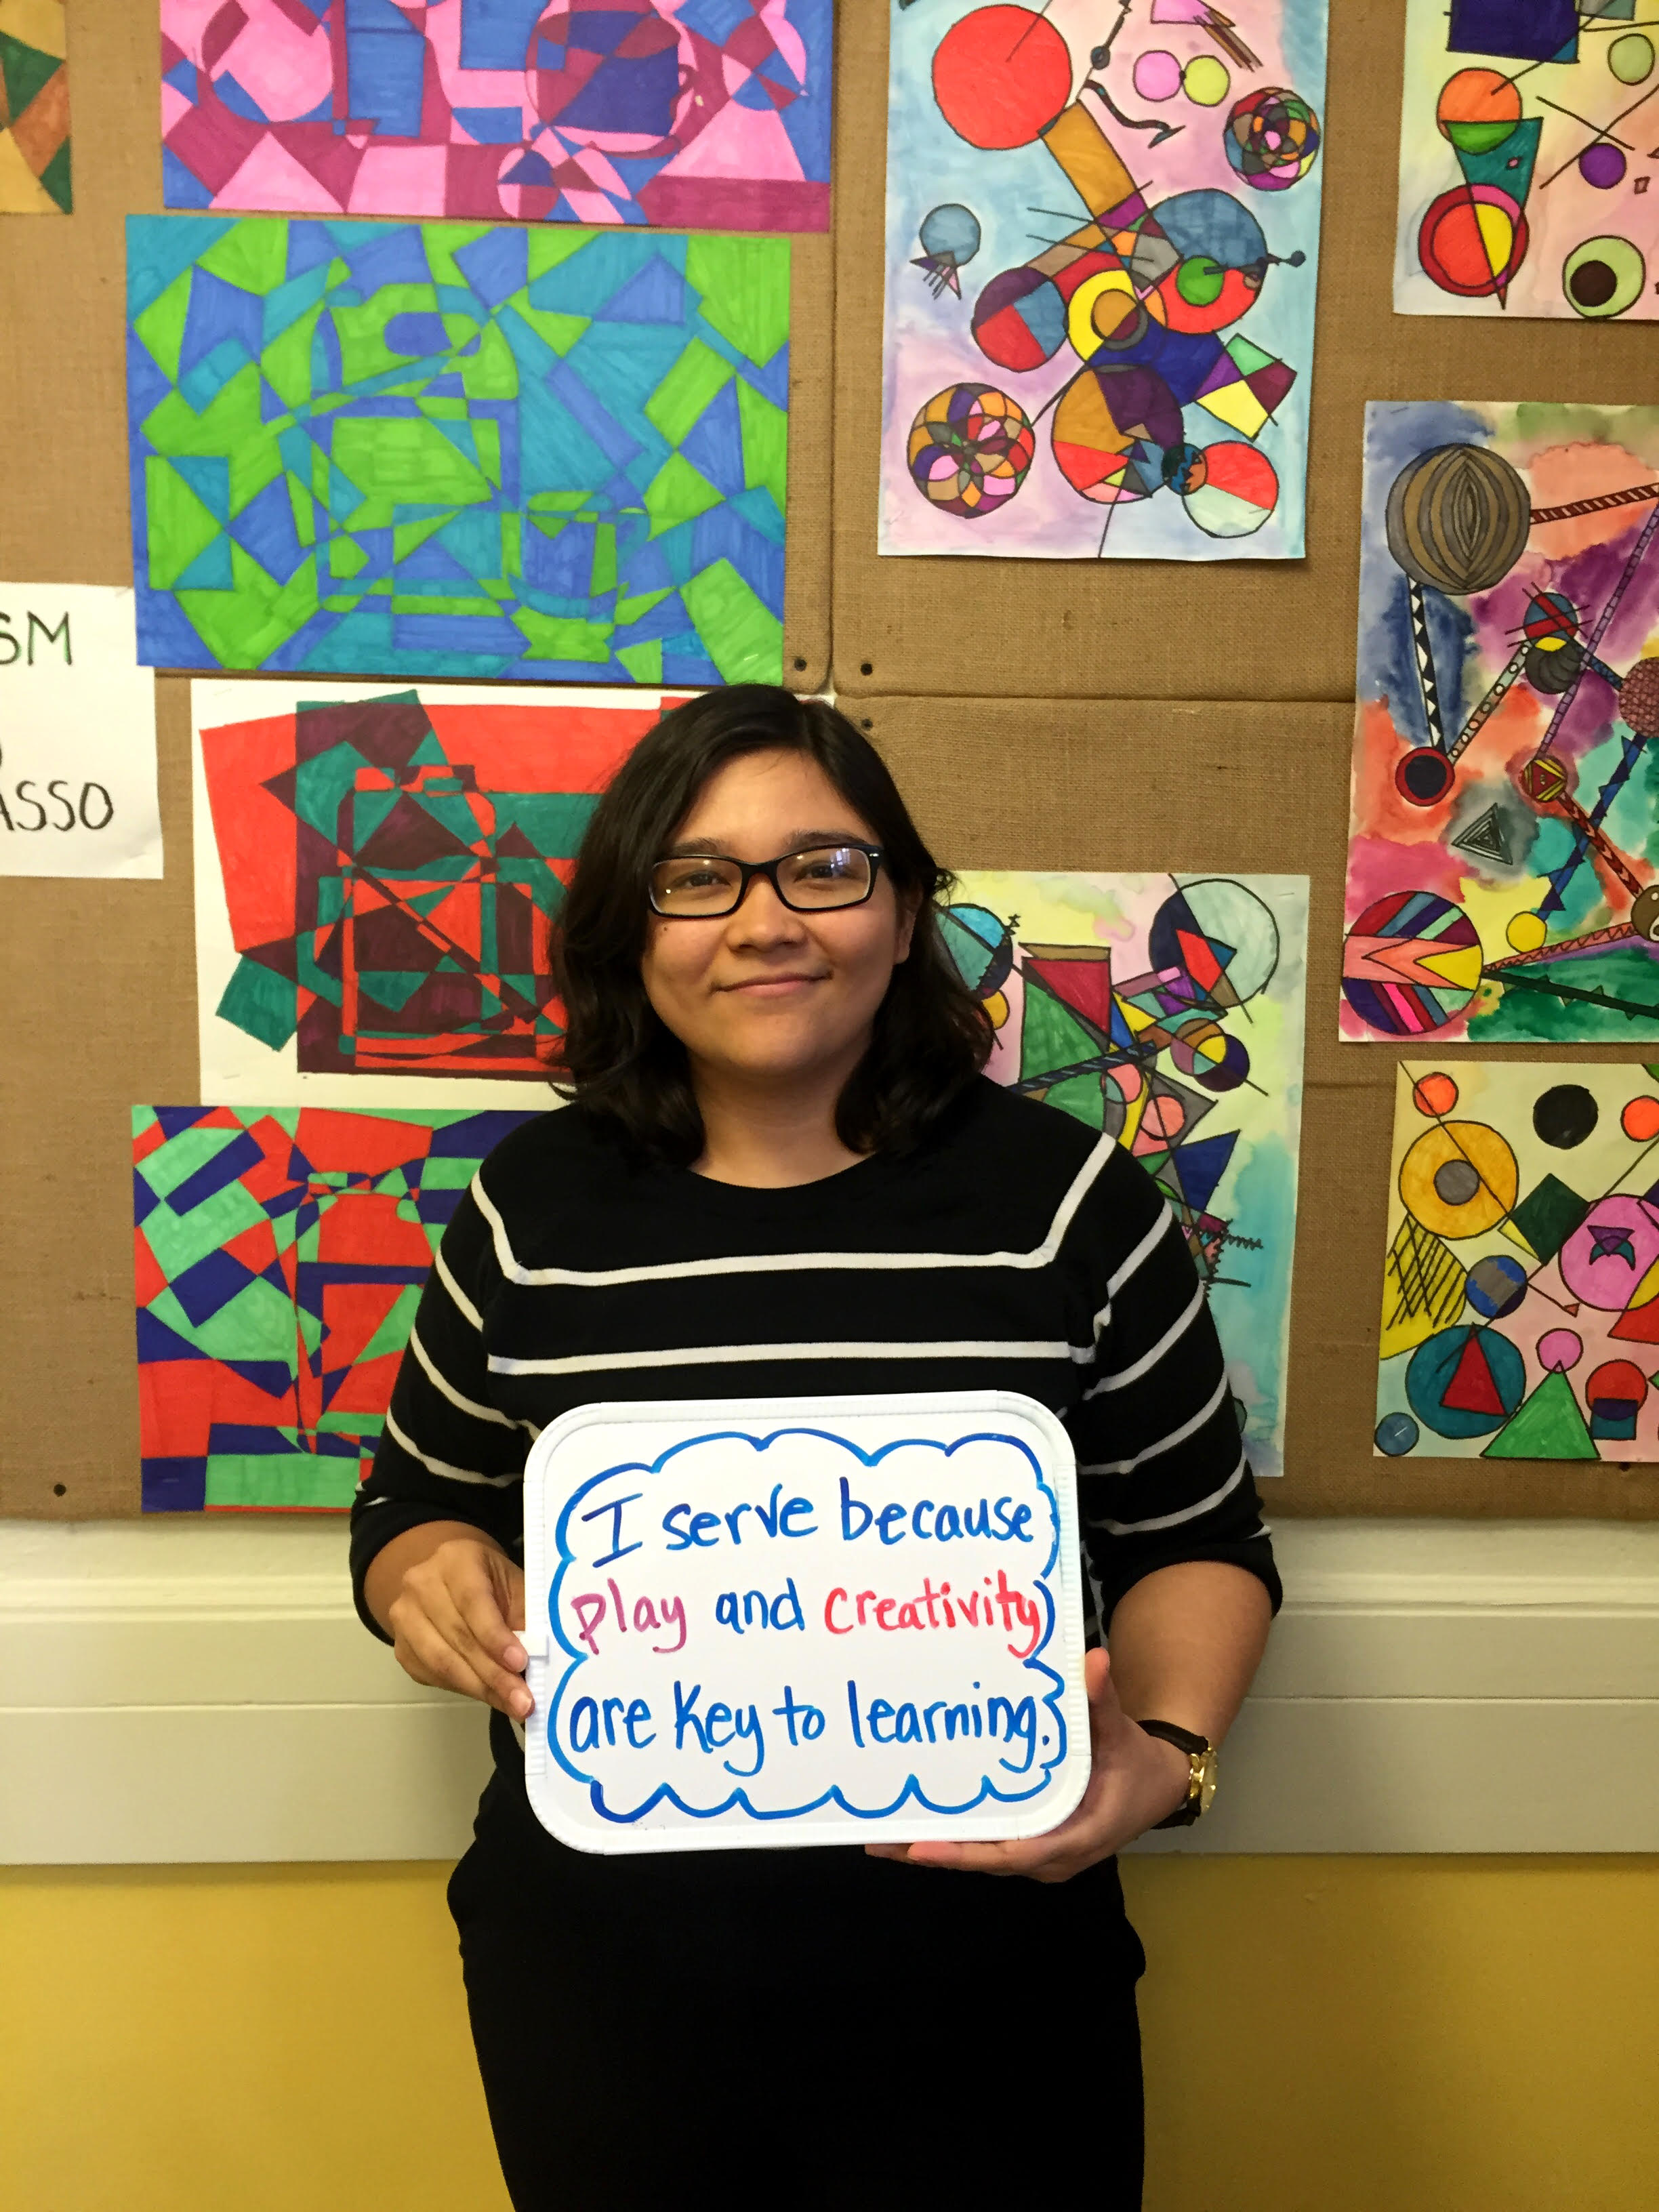 """""""I serve because play and creativity are key to learning"""" - Yuris Martinez, First-Year Esperanza Teaching Fellow at Esperanza Academy & Lawrence Intentional Community"""